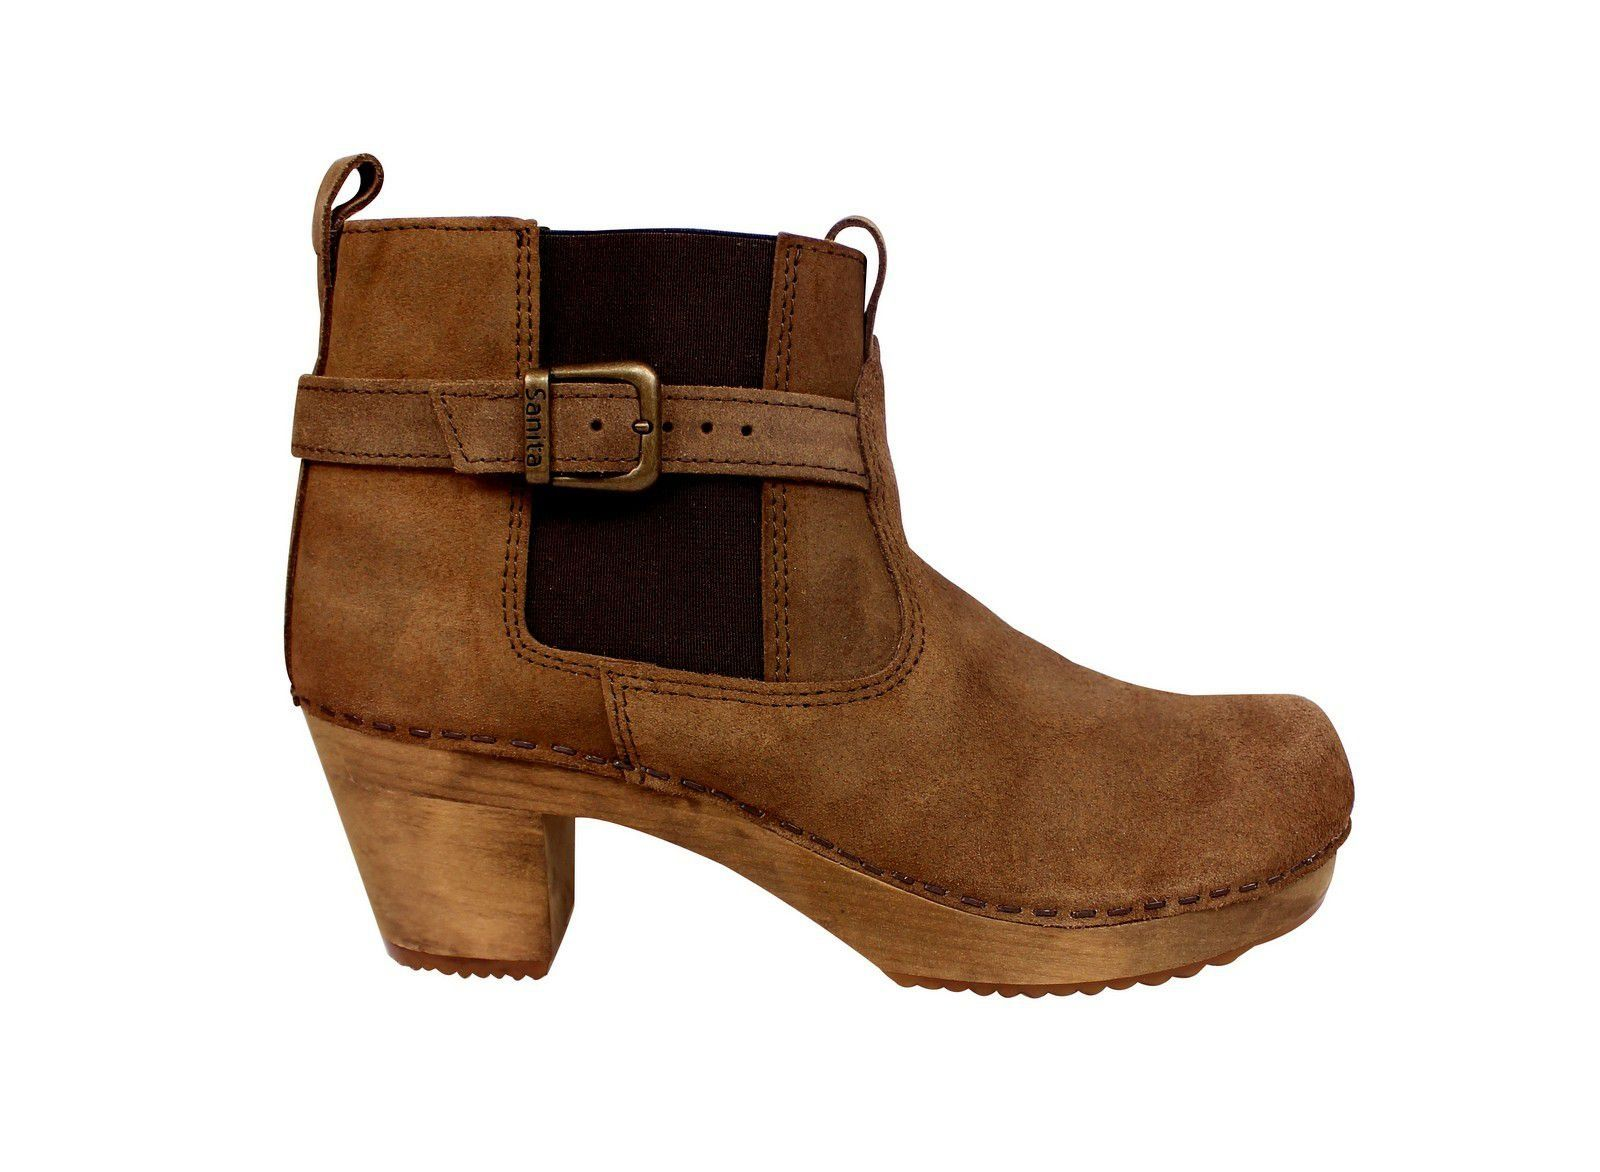 Sanita Peggy Sue Jodphur style ankle boots Antique Brown Side